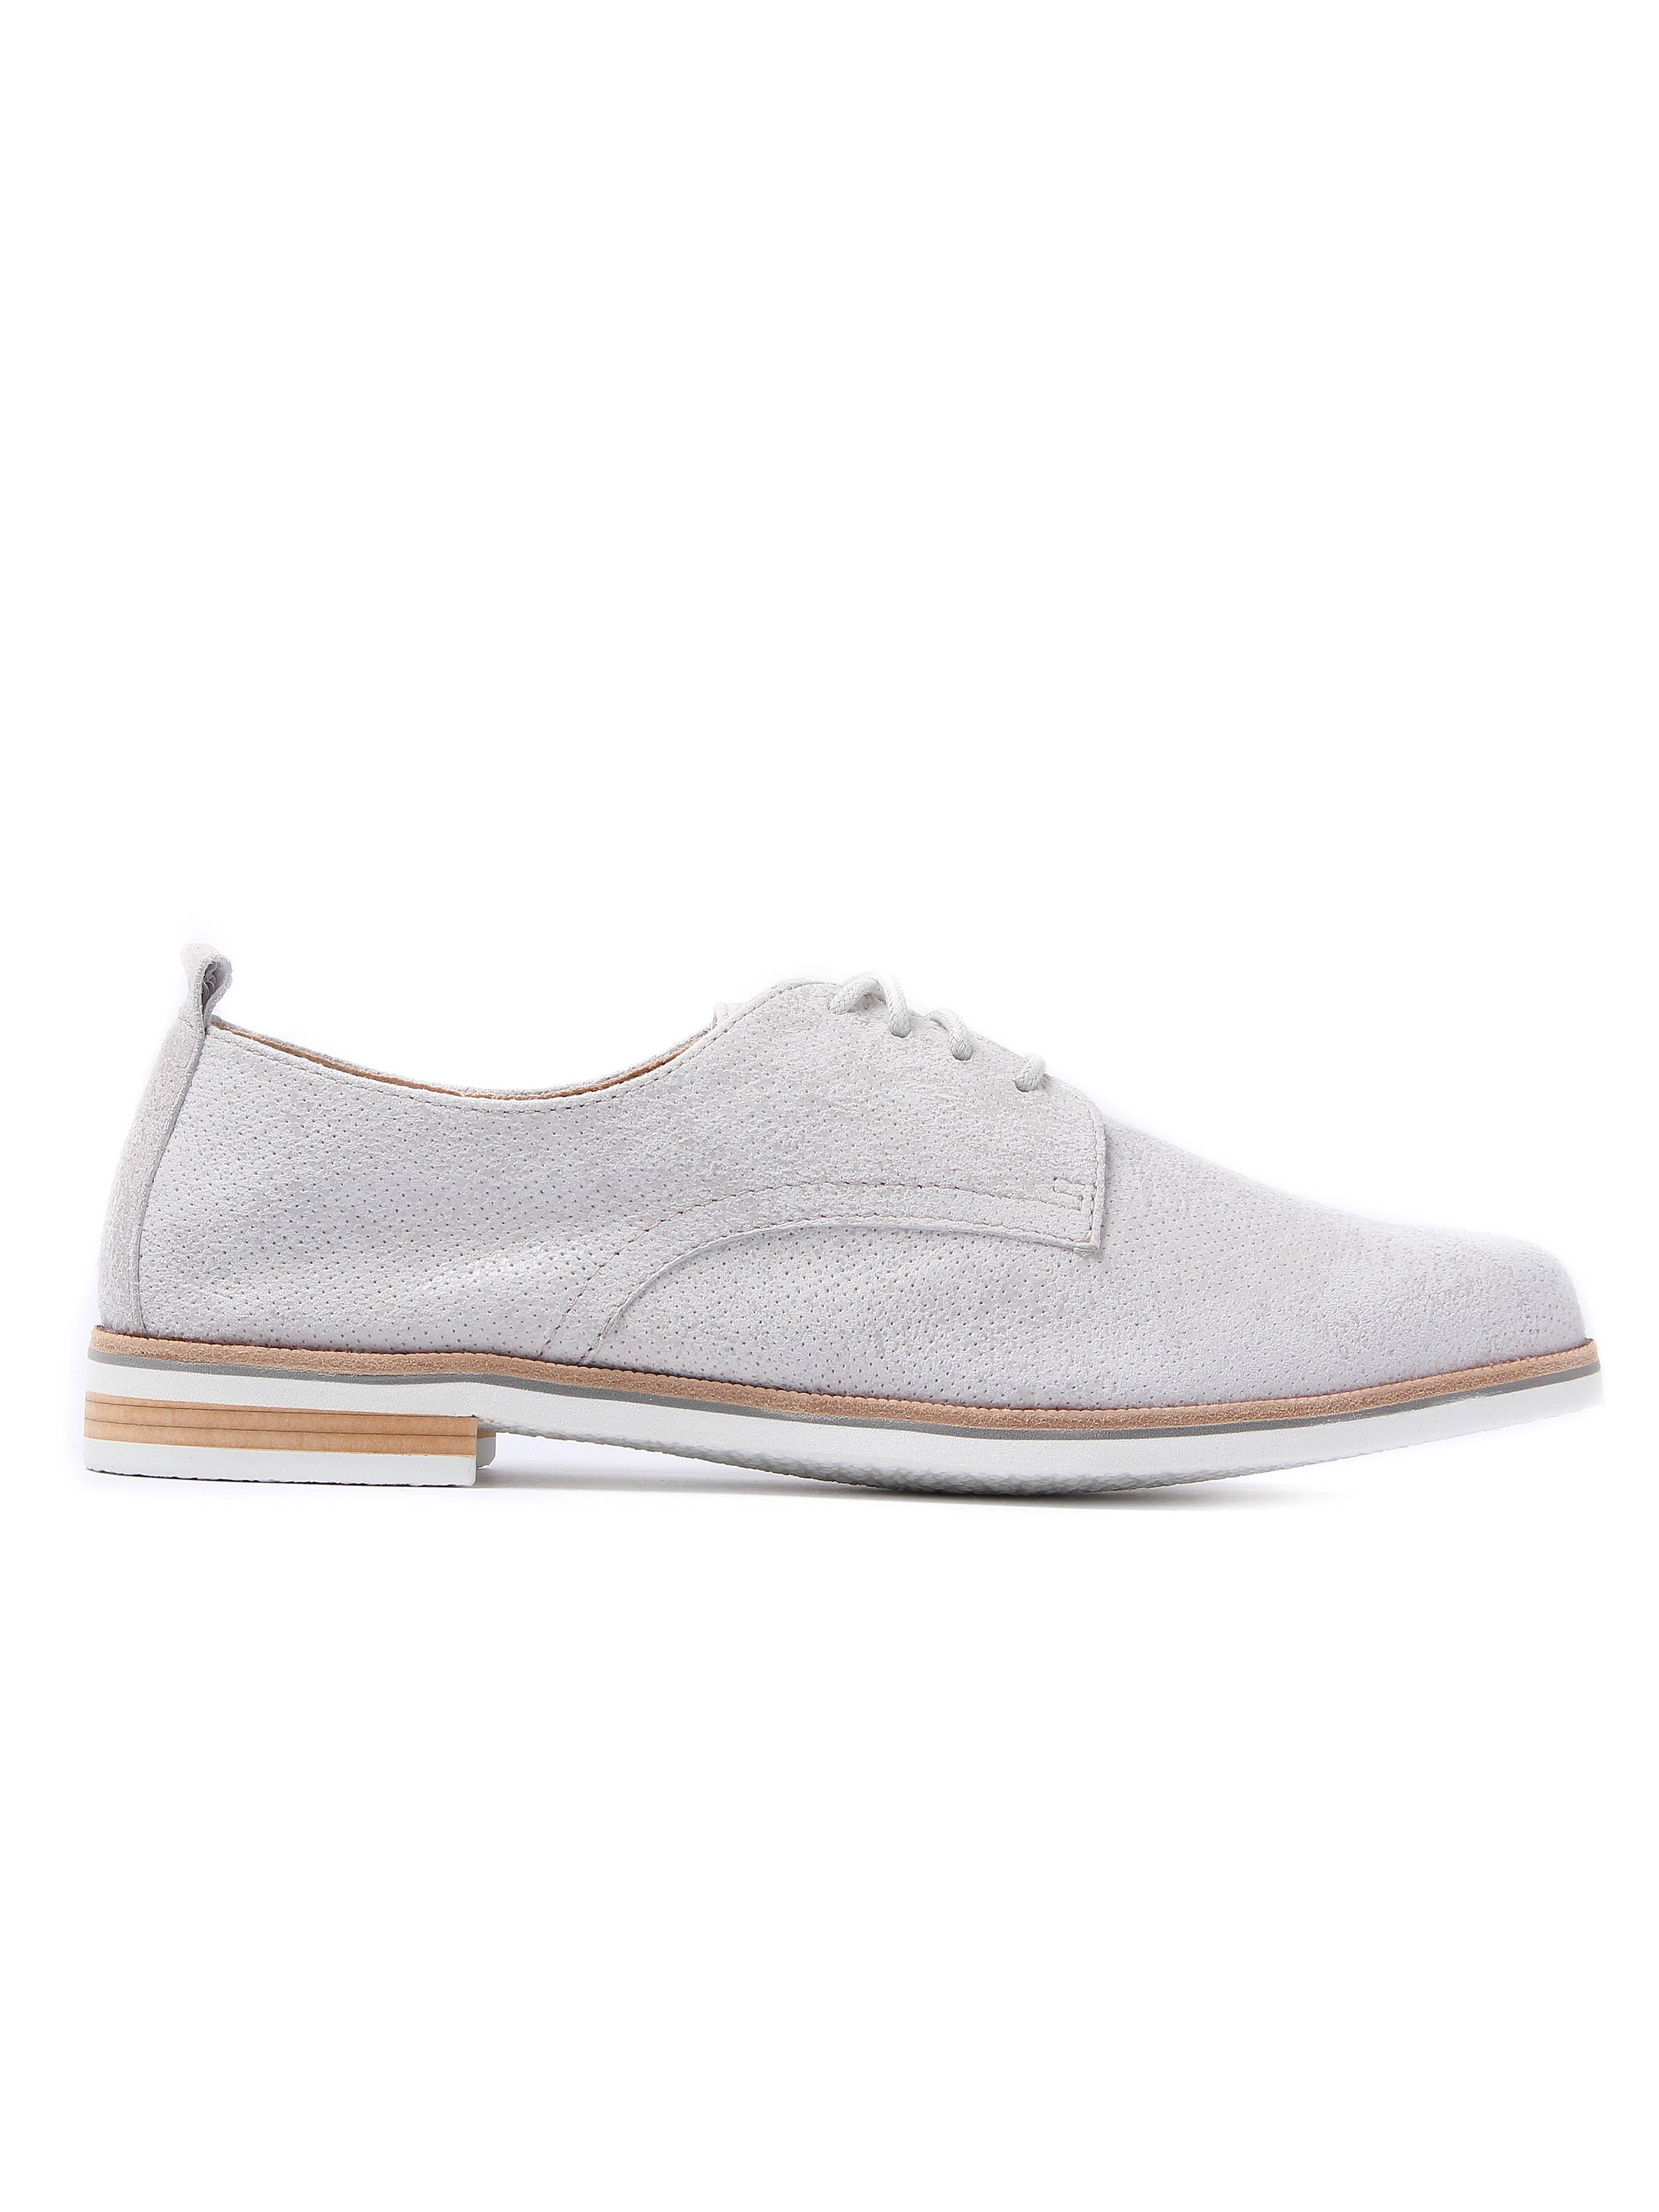 Caprice Women's Perforated Leather Derby Shoes - Light Grey